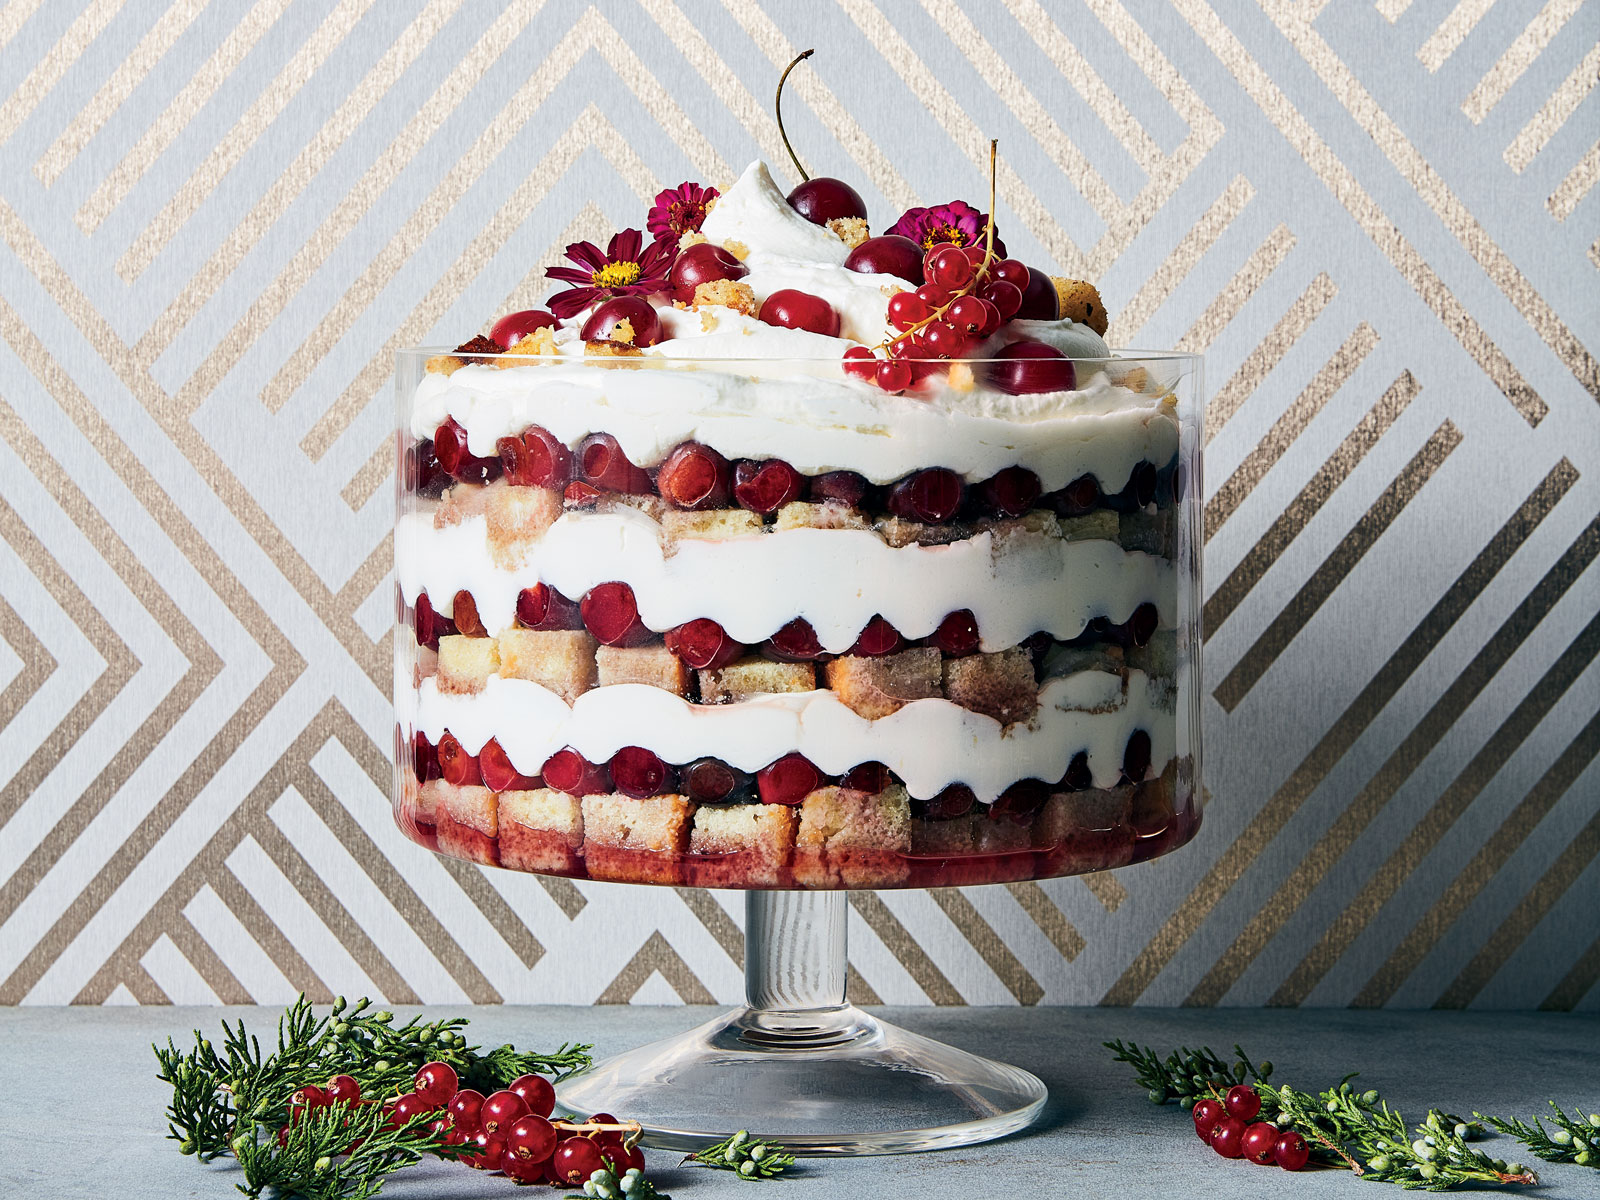 31 Recipes to Make in December